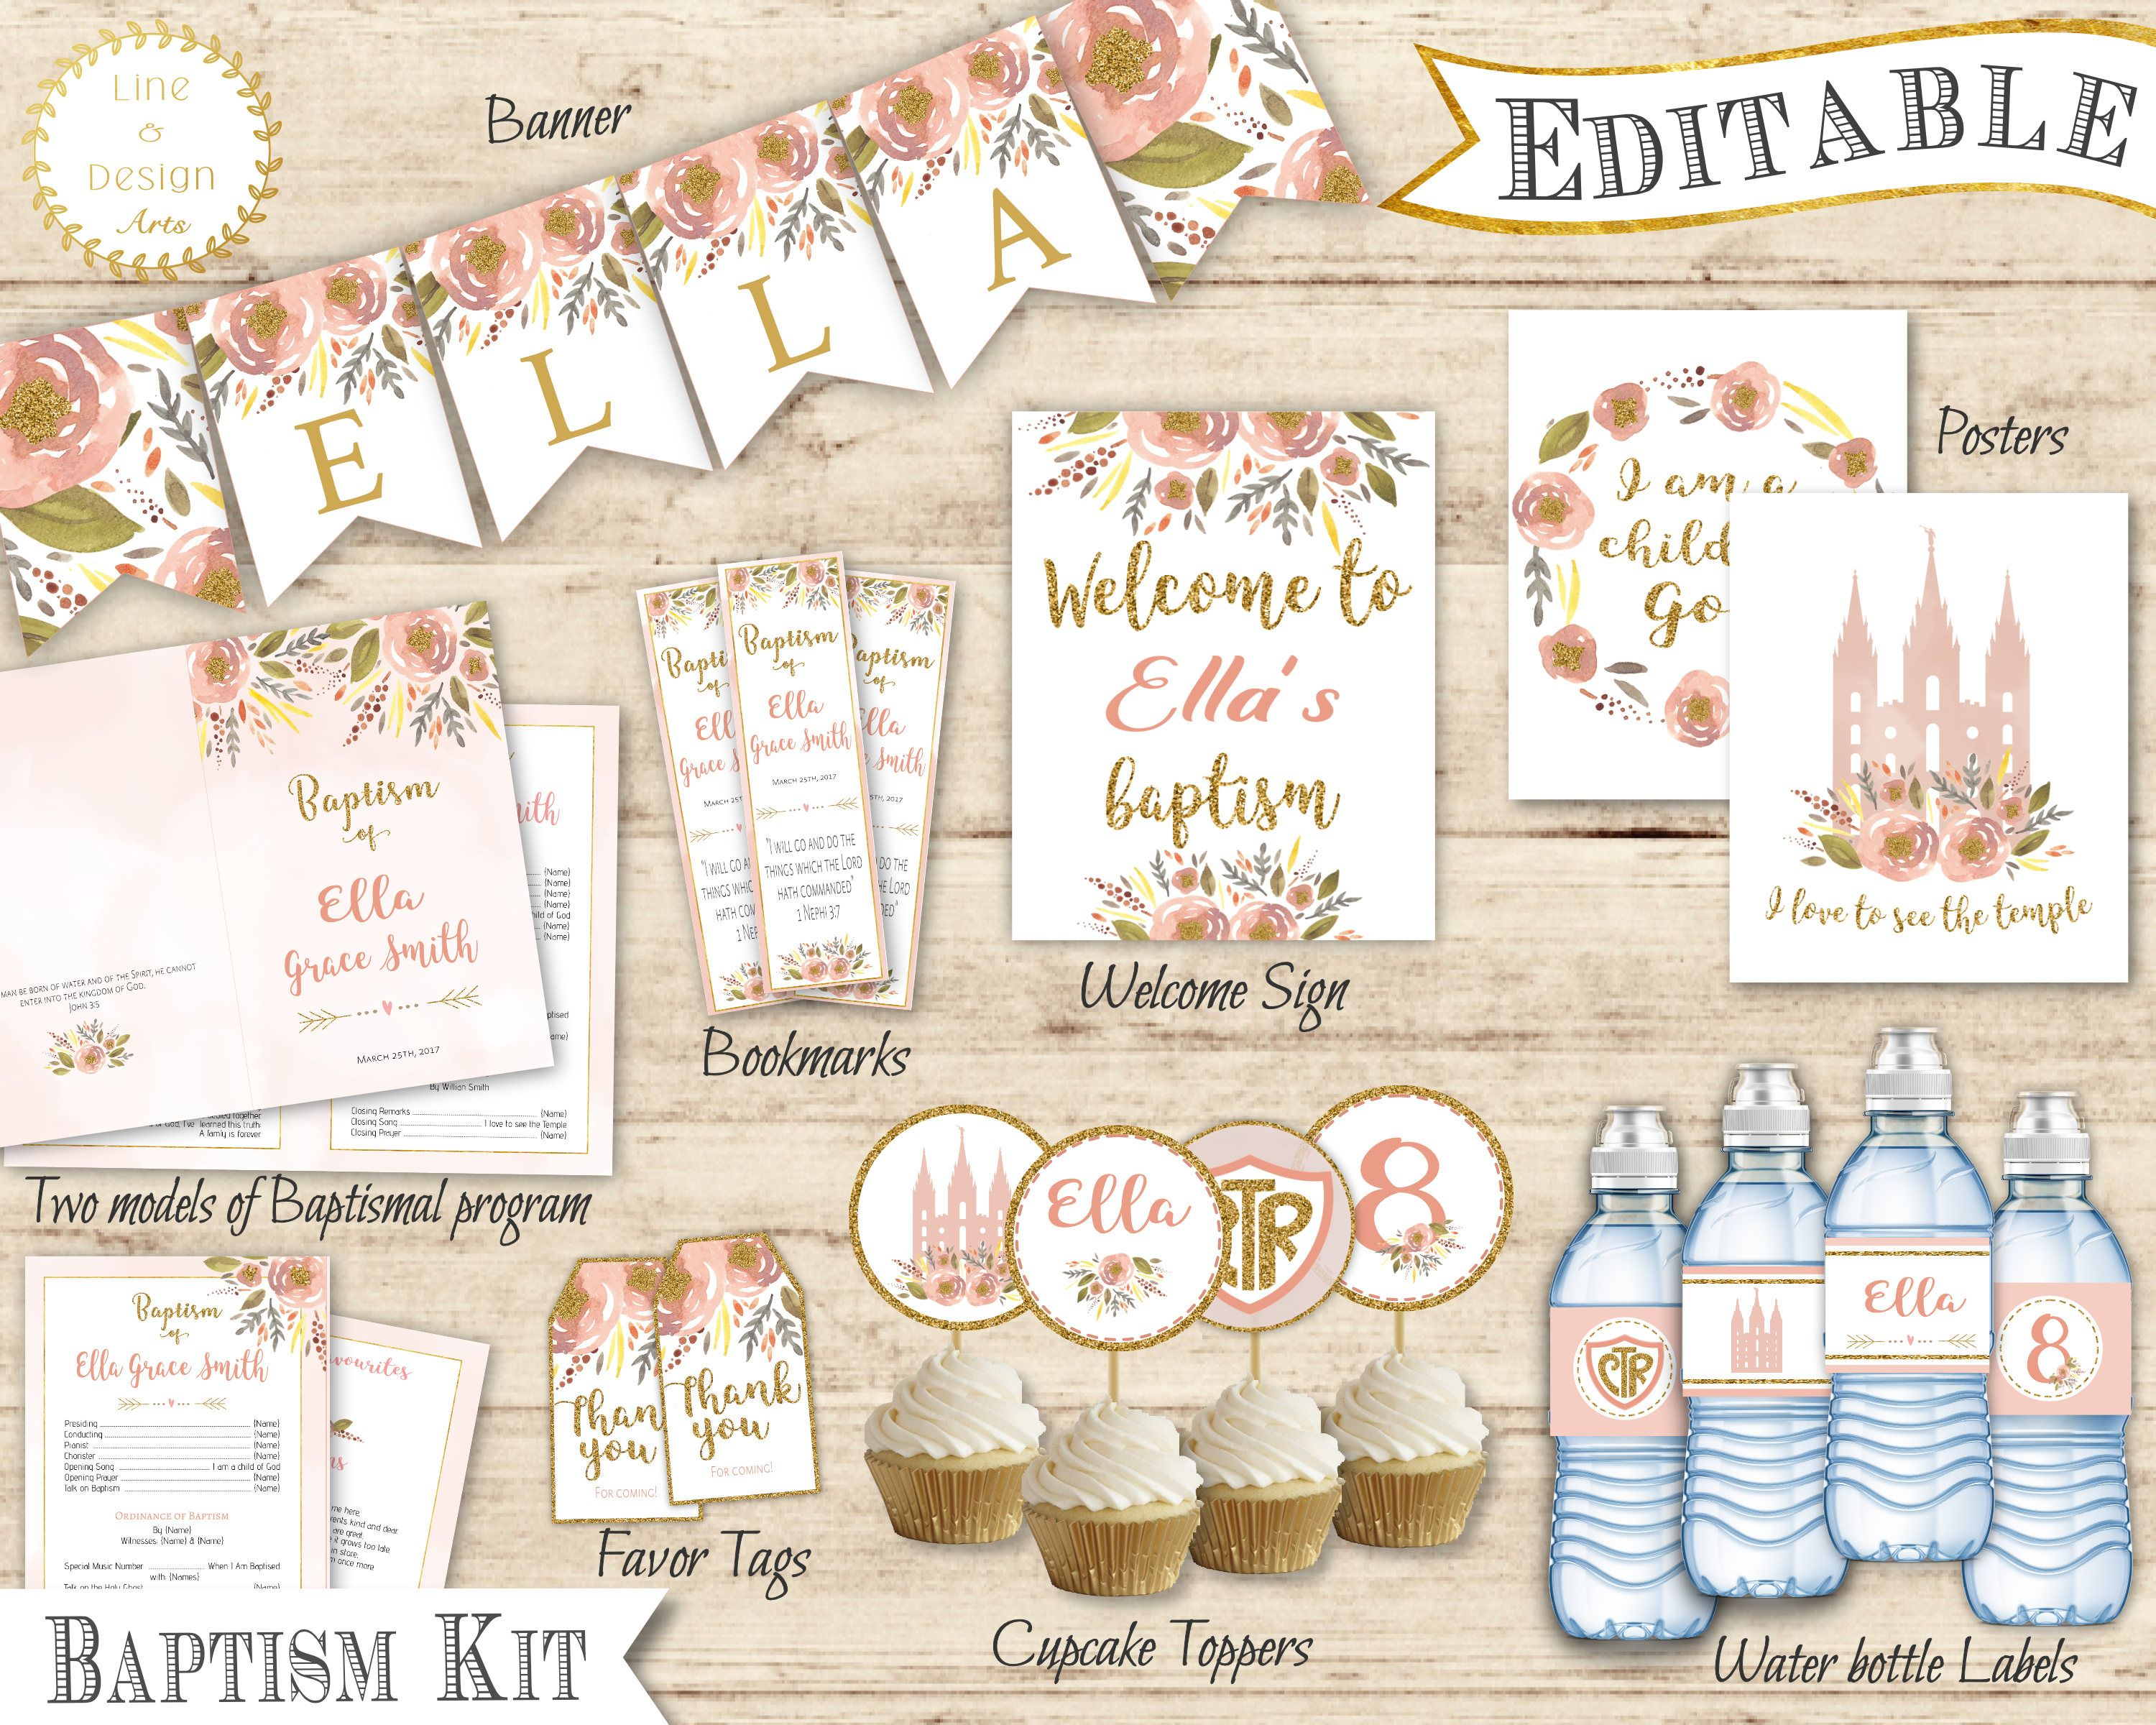 Lds Baptism Kit Girl Editable Baptism Program Toppers Tags Banner Flags Book Markers Water